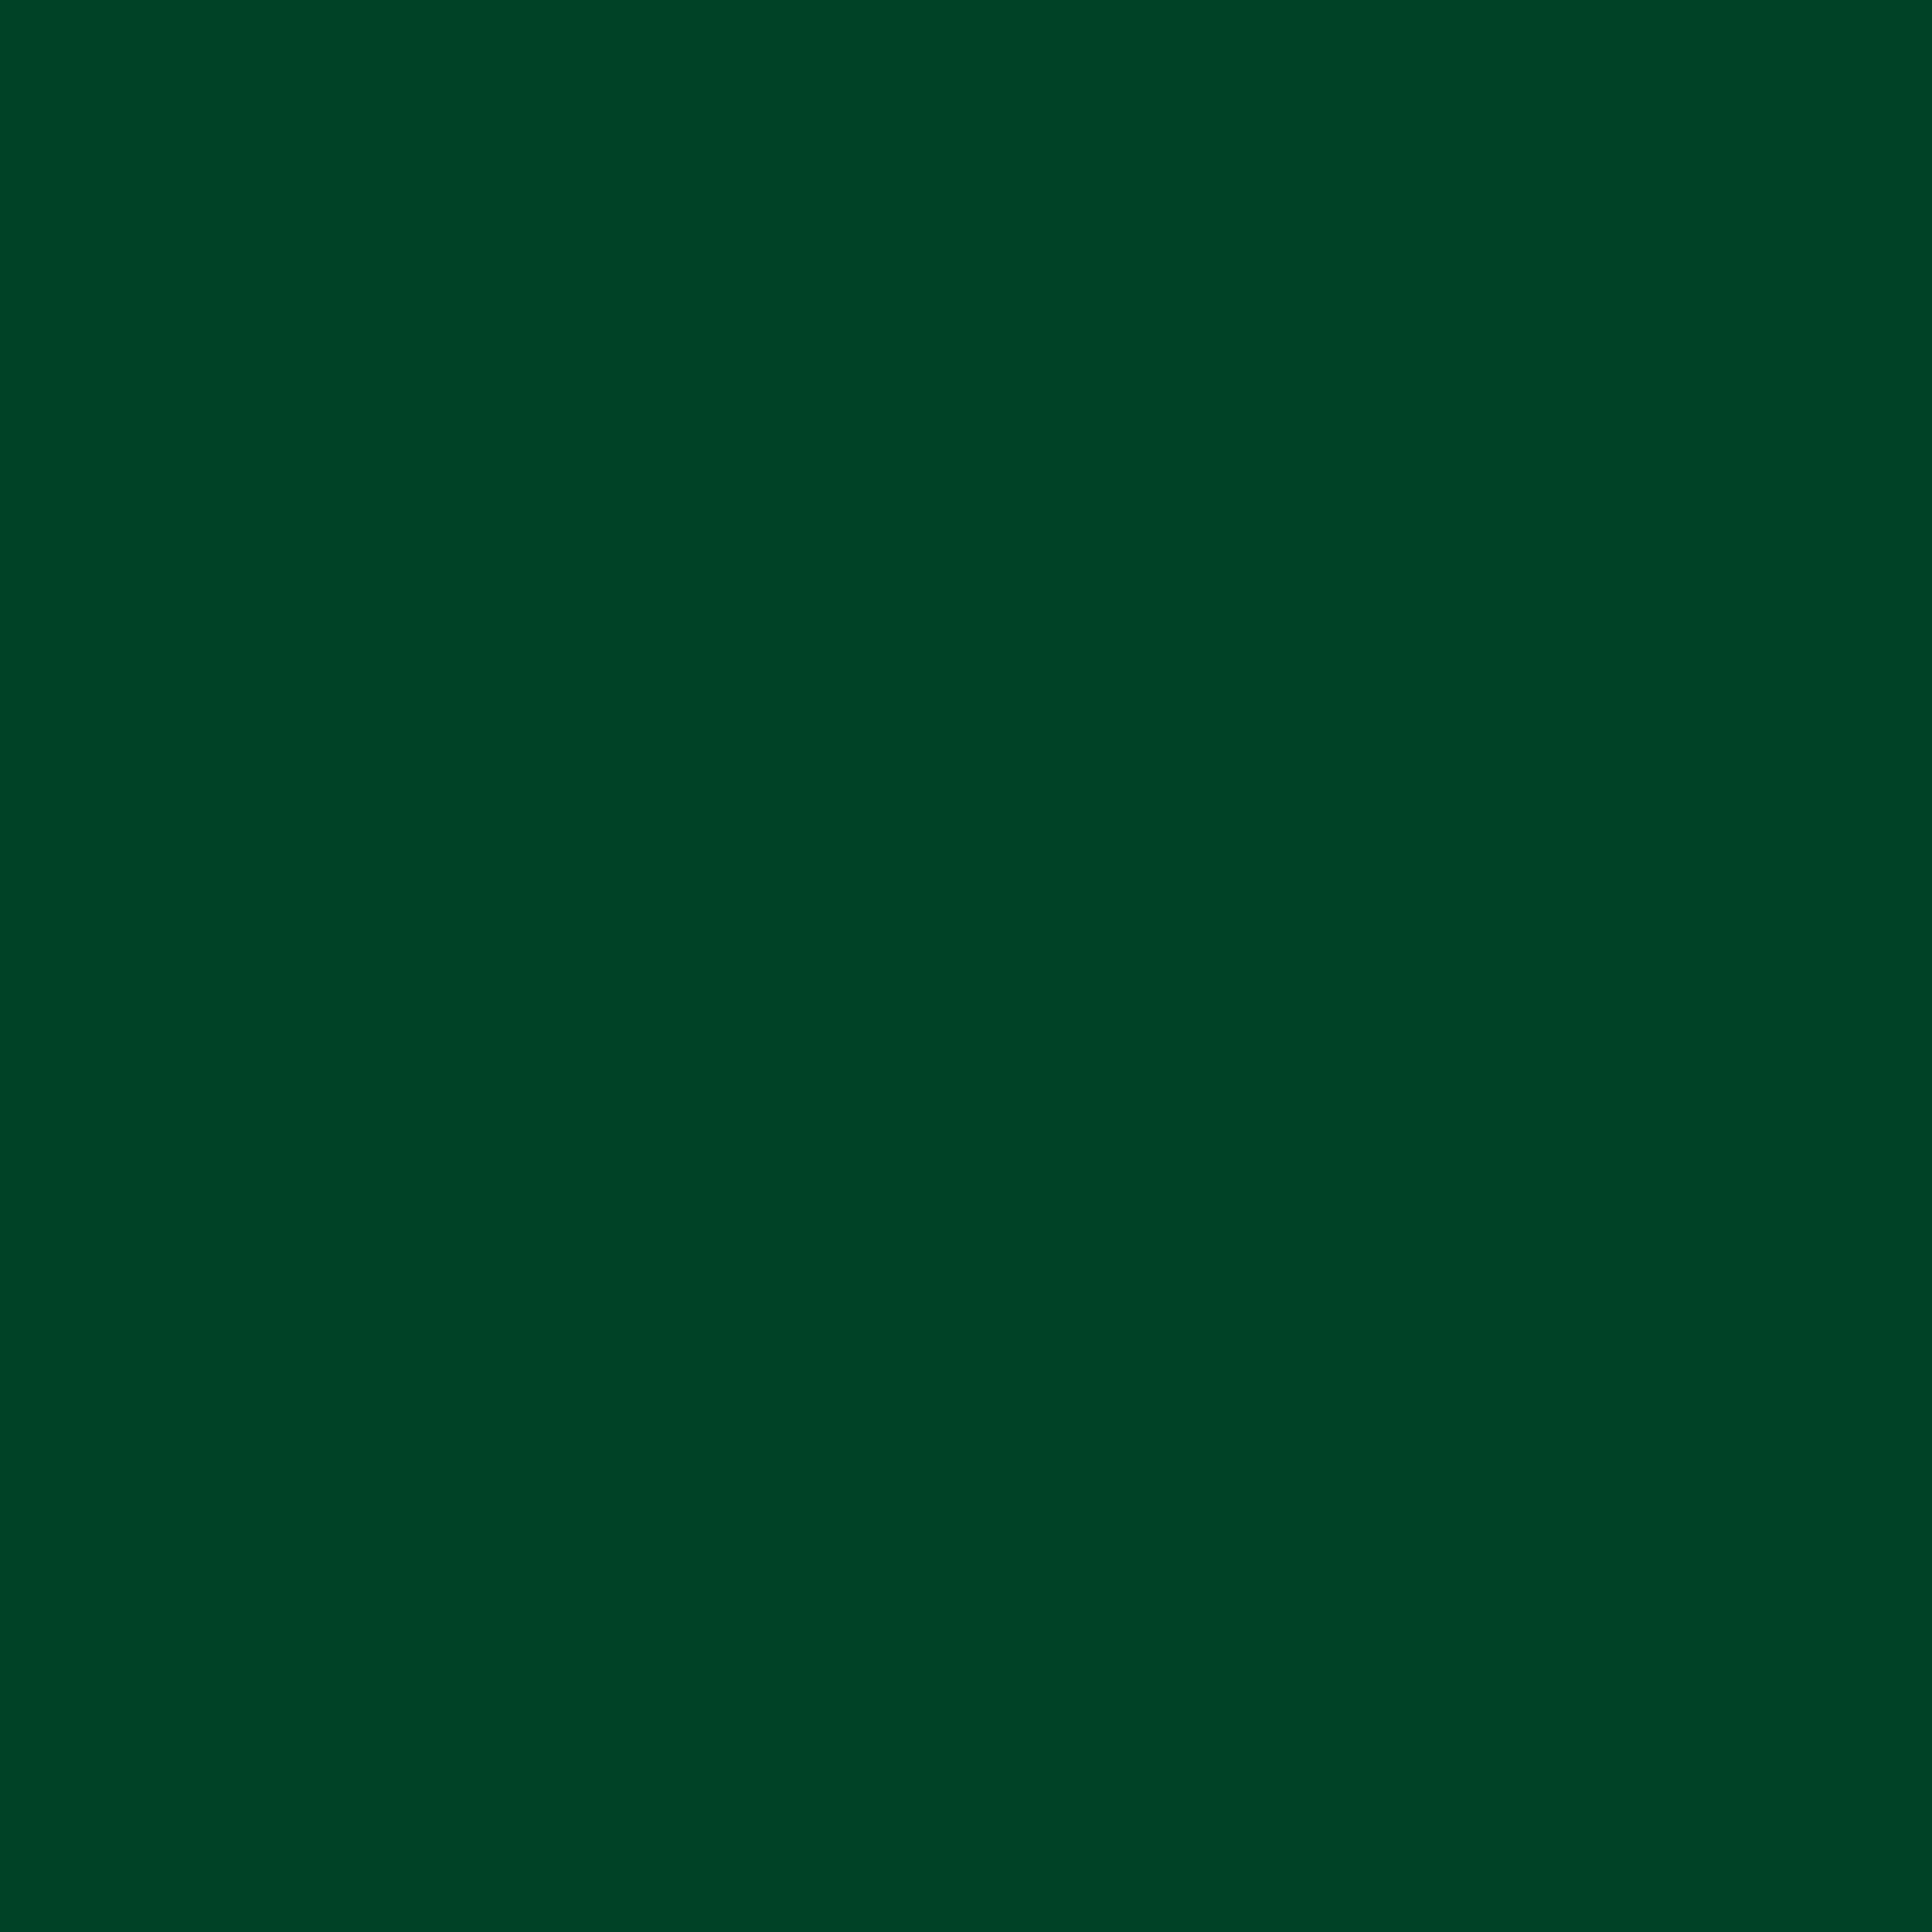 2048x2048 British Racing Green Solid Color Background